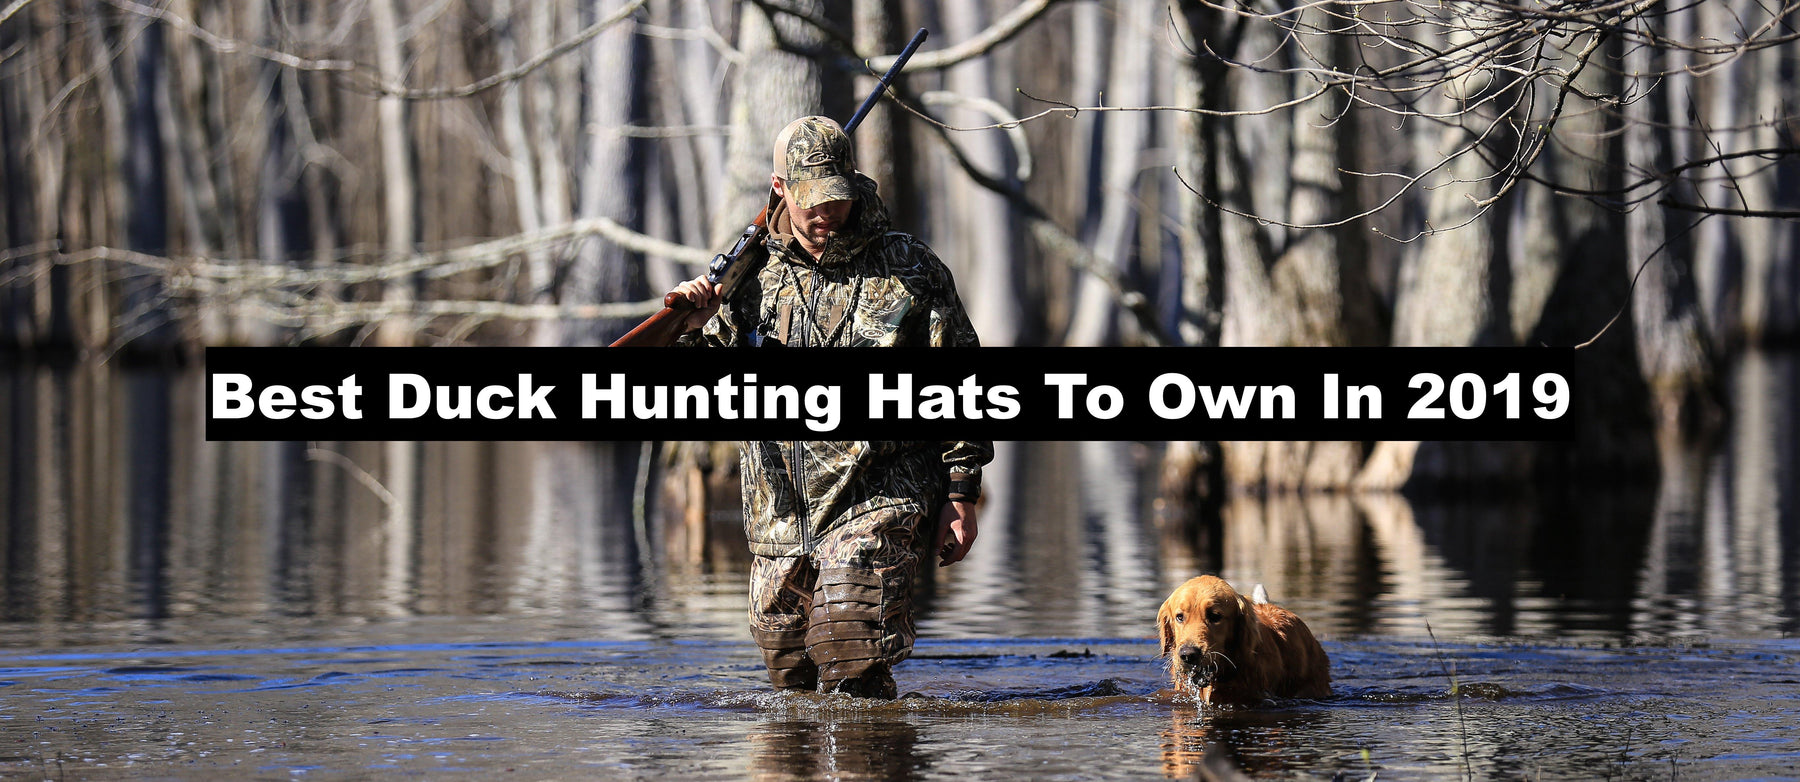 Best Duck Hunting Hats To Own In 2019